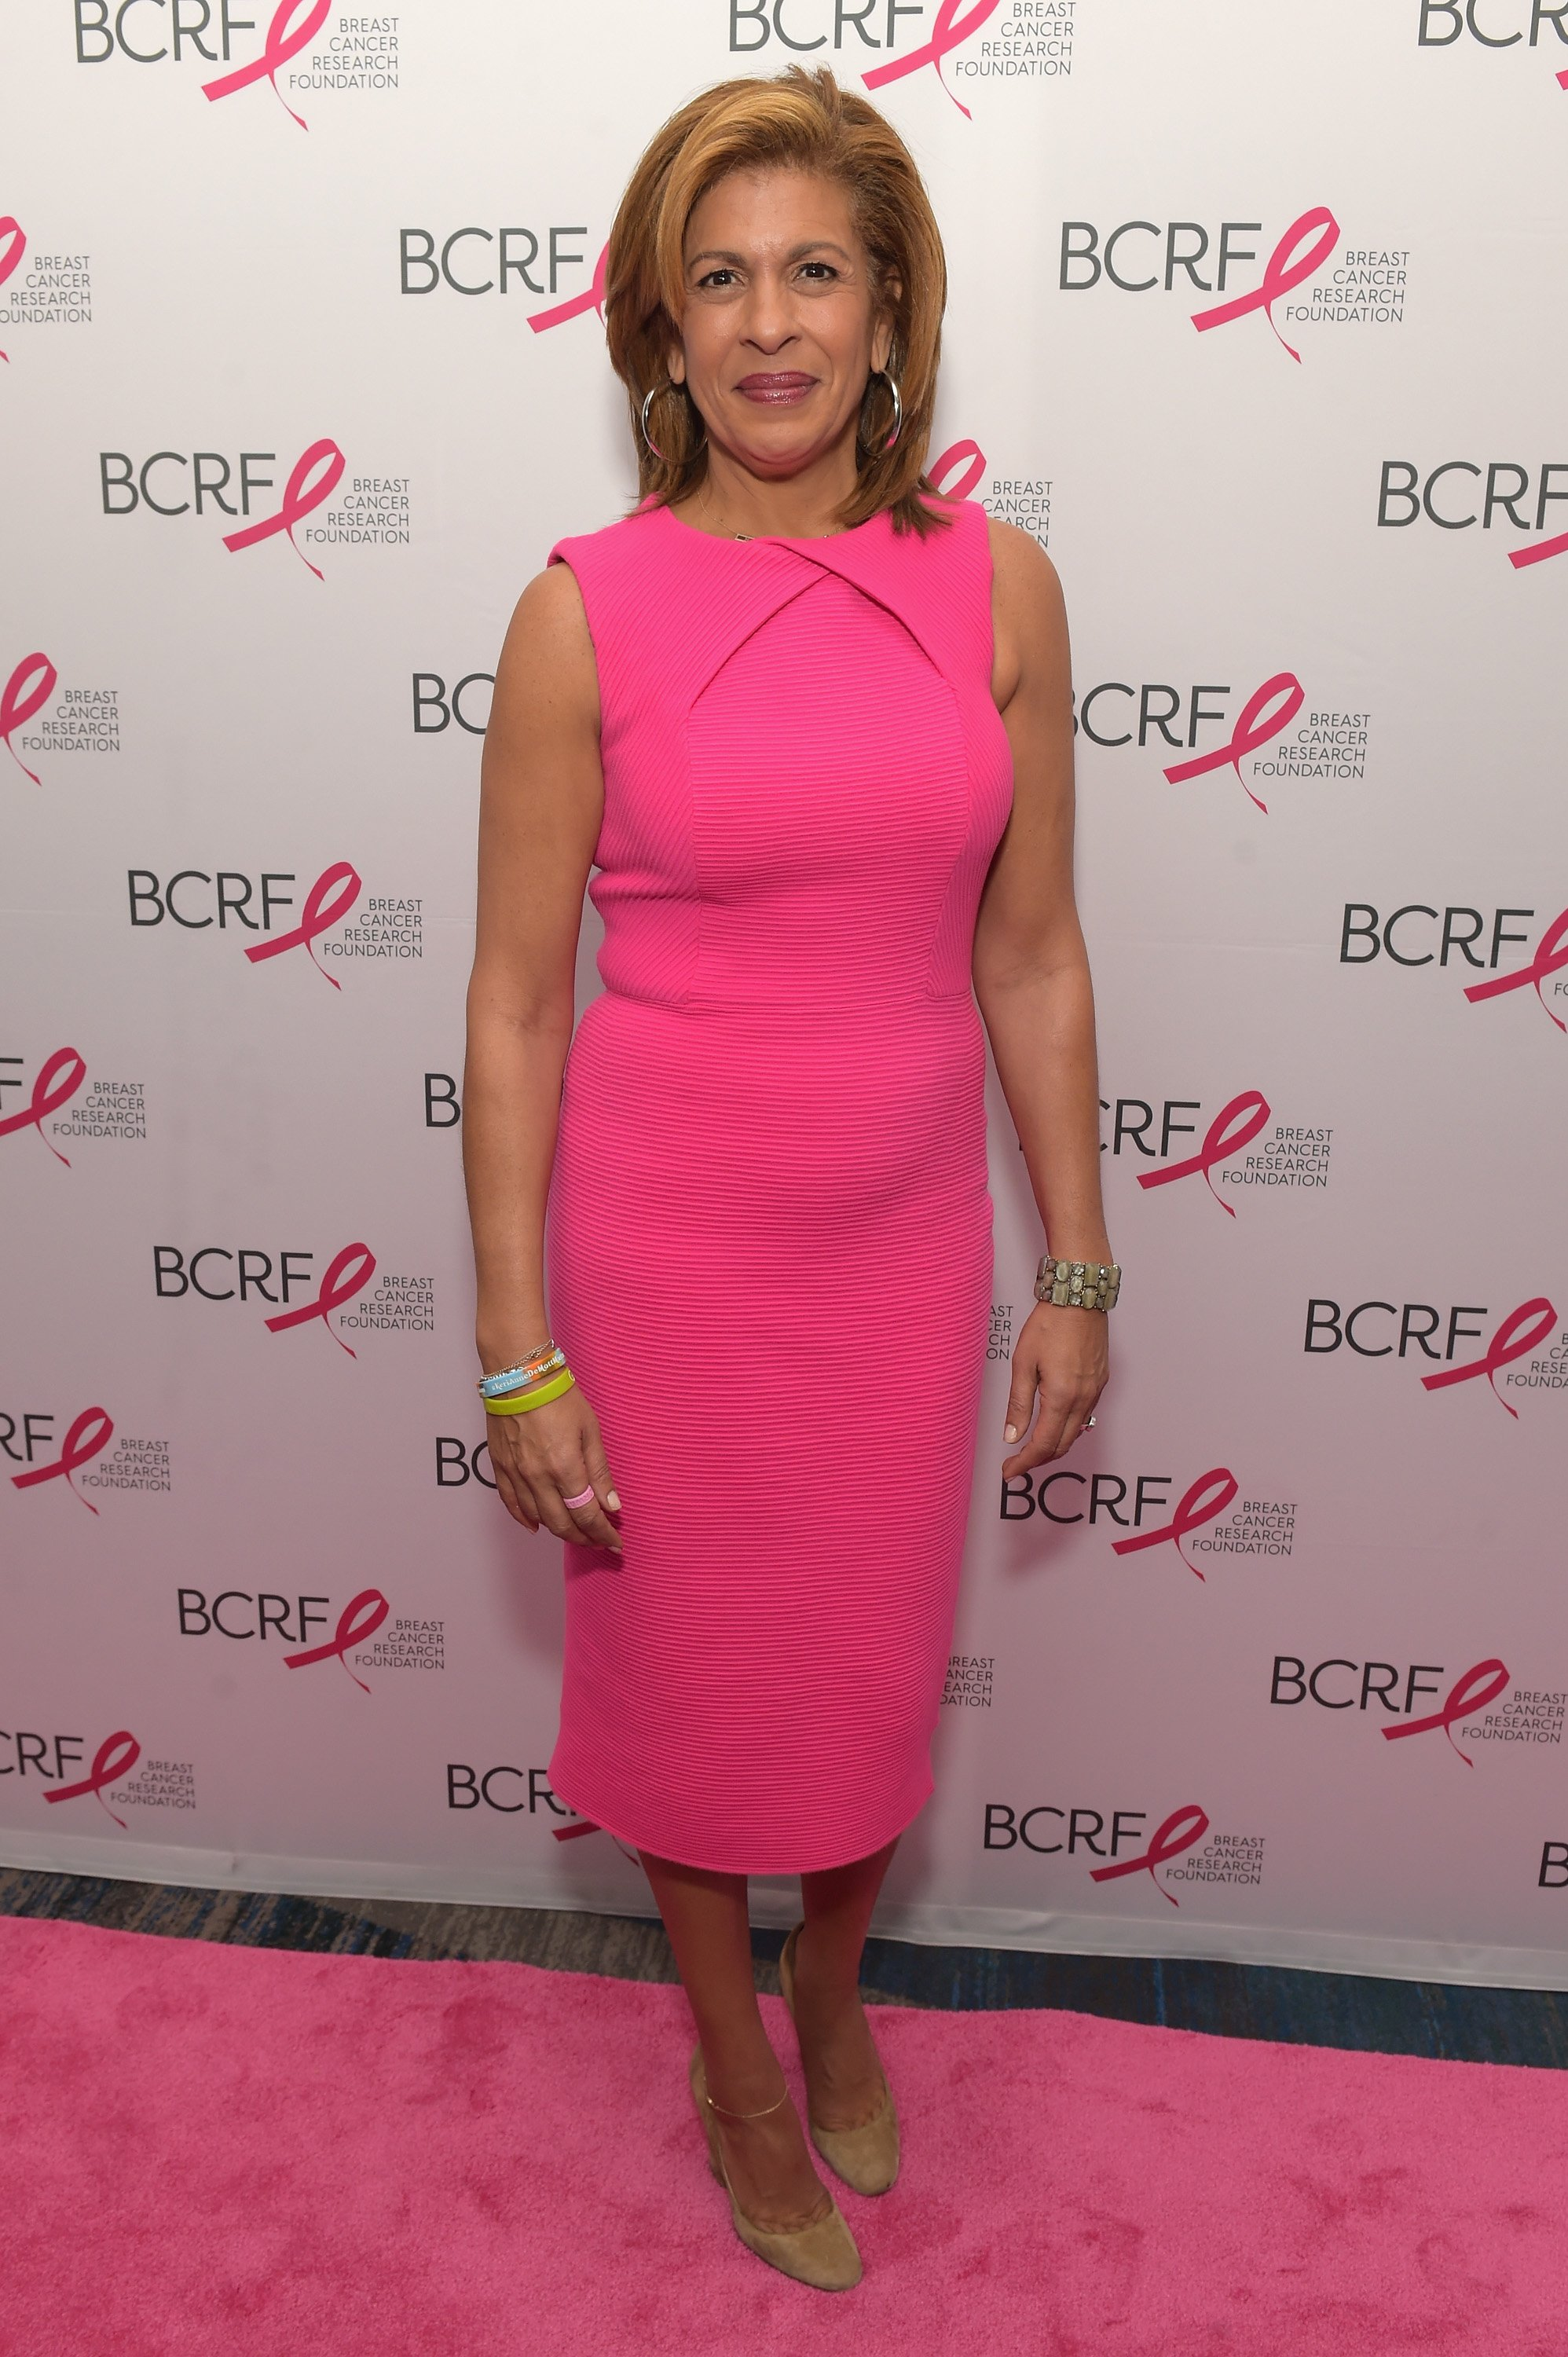 Hoda Kotb attends a pink carpet event in New York City on October 19, 2017 | Source: Getty Images